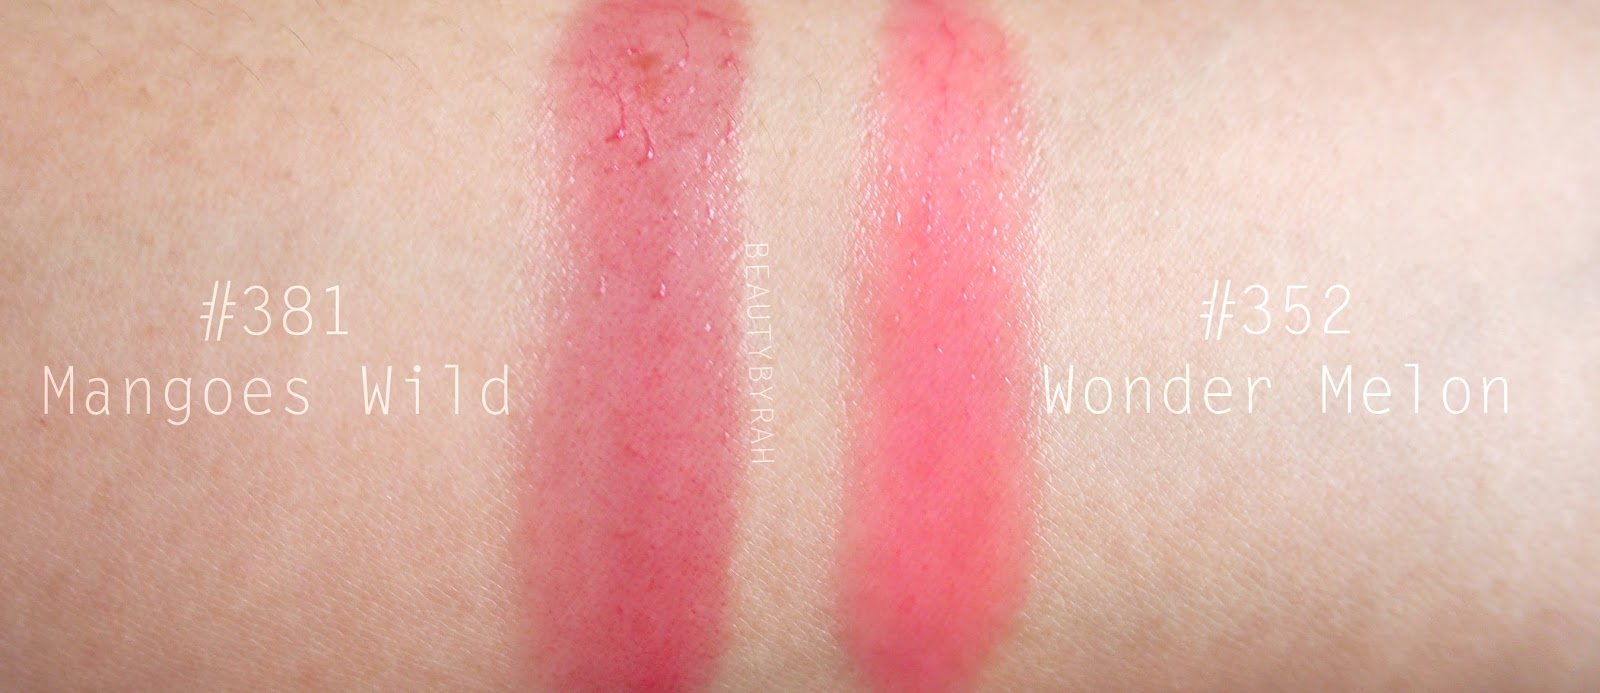 Lancôme Juicy Shakers Mangoes Wild and Wonder Melon Review and swatches